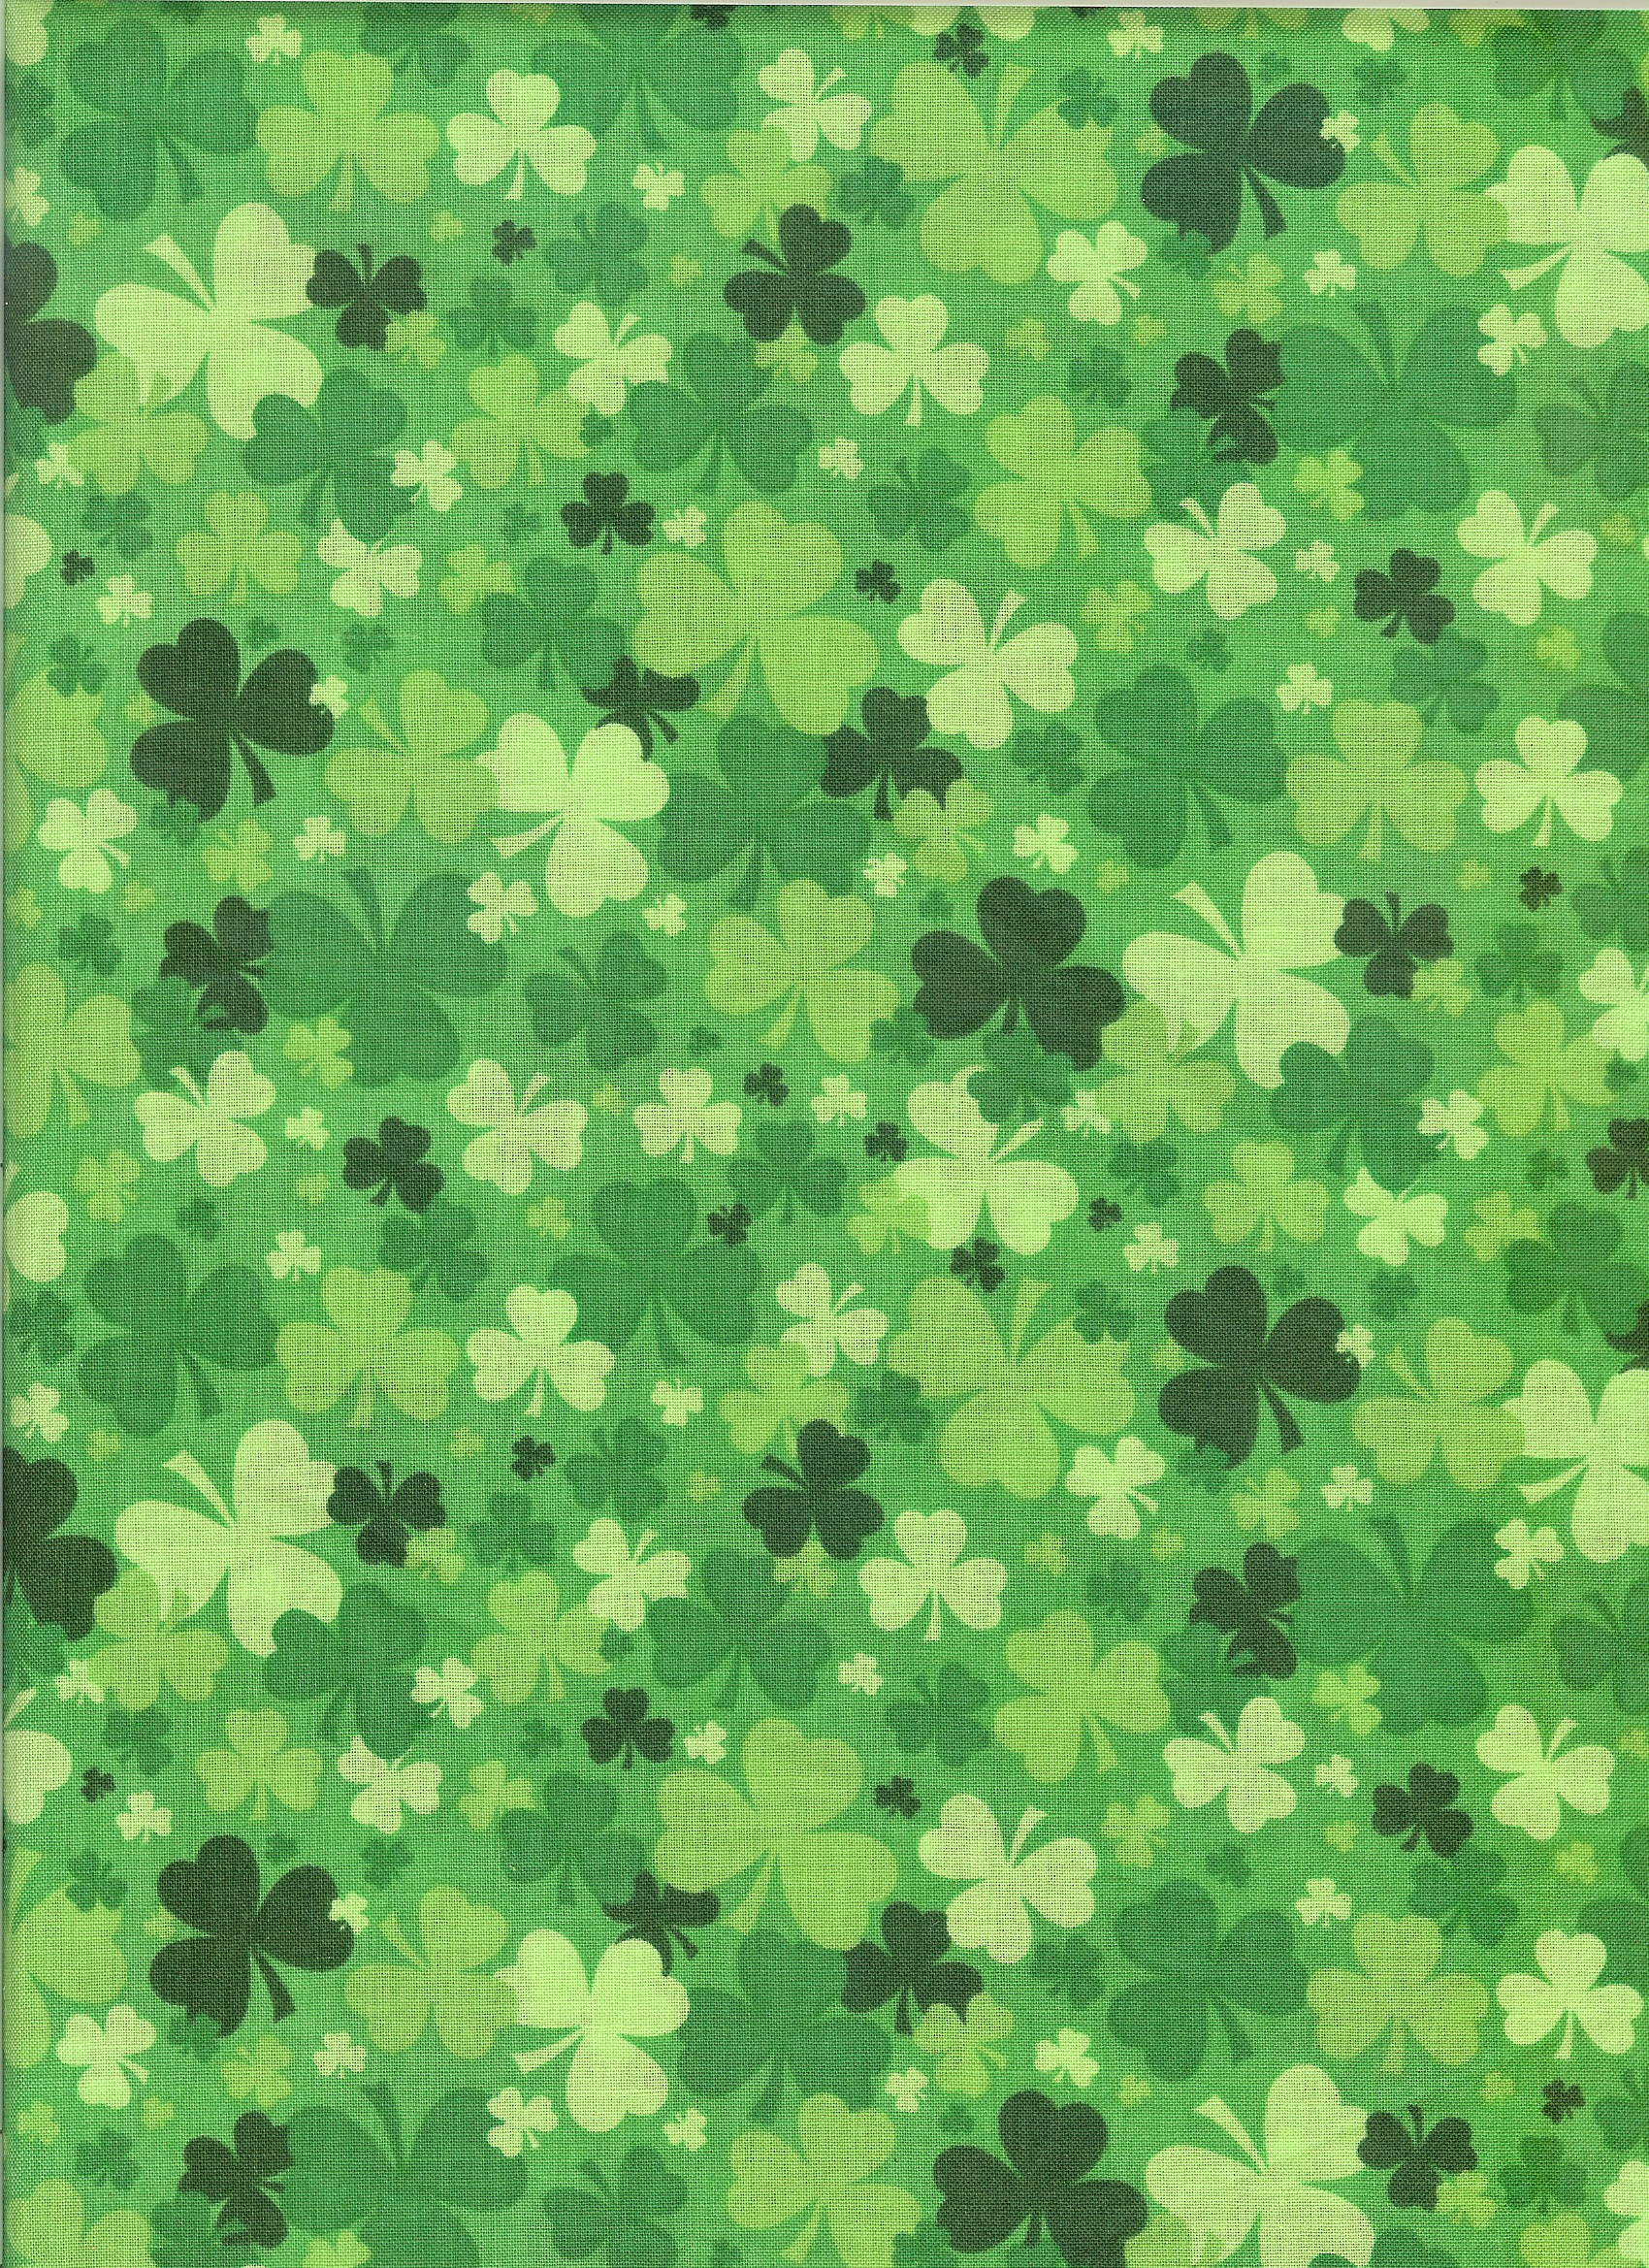 Floral Print Iphone Wallpaper Shamrock Background 183 ① Download Free Awesome Hd Wallpapers